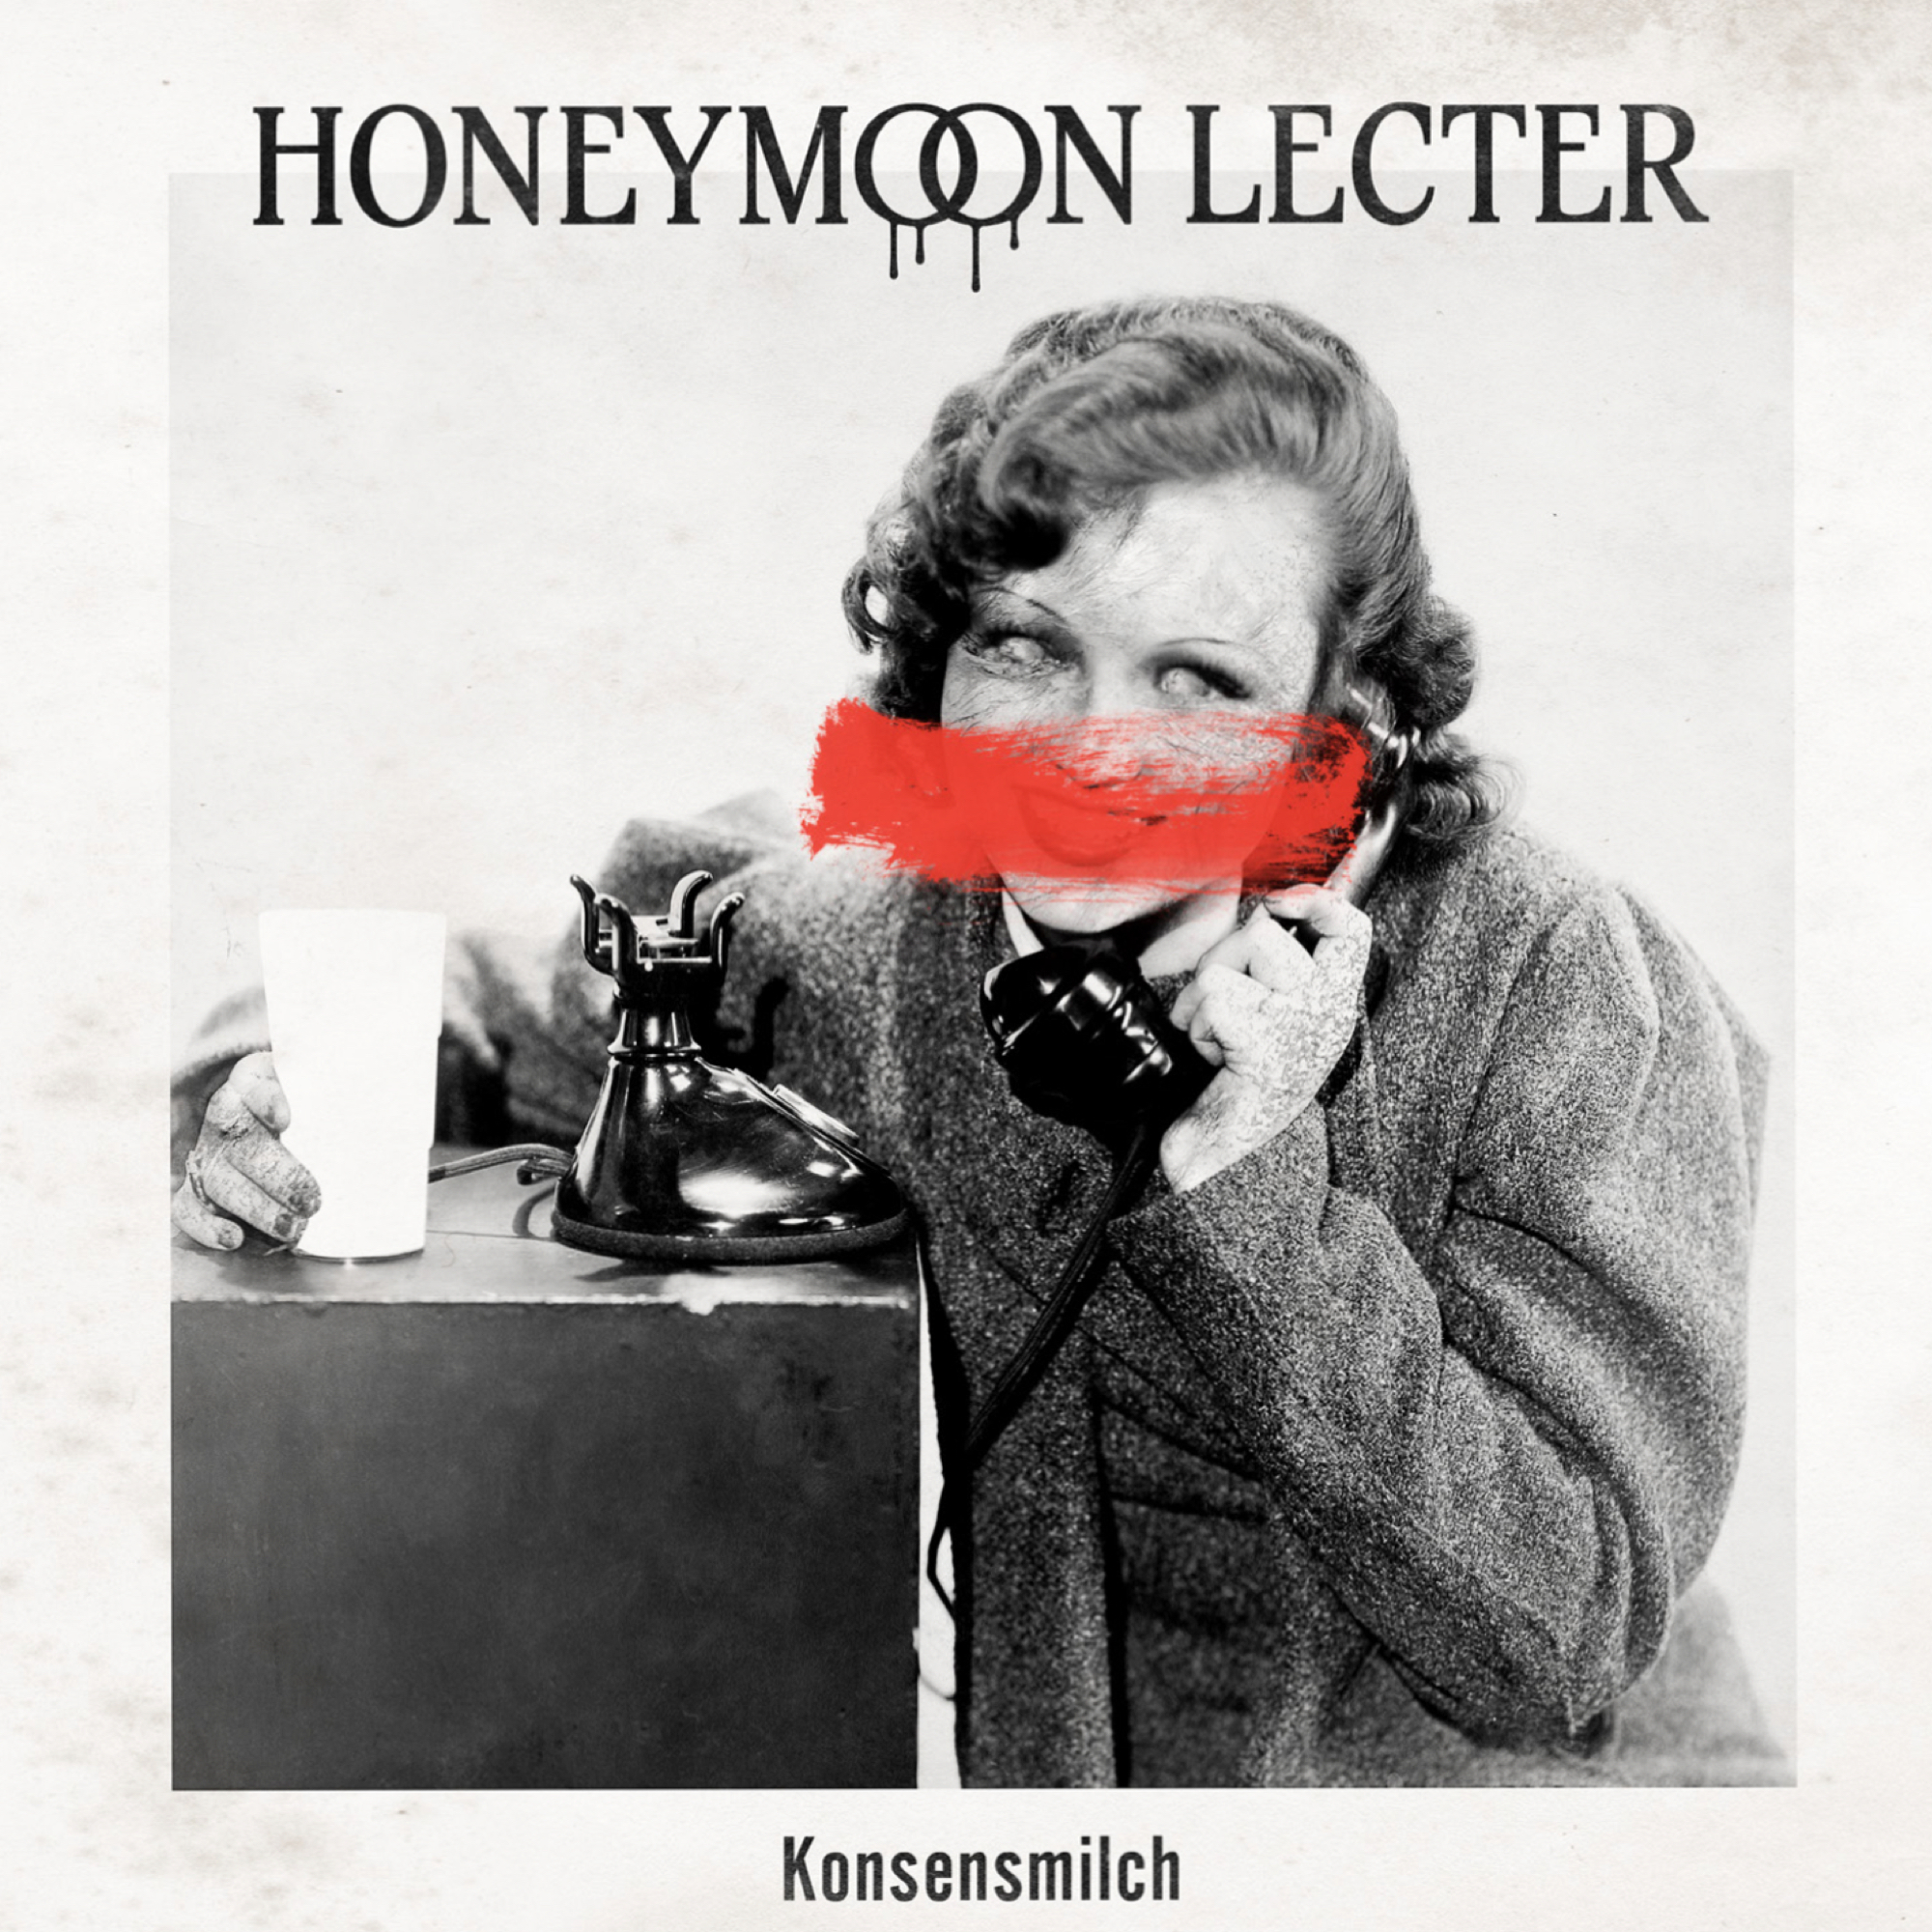 Honeymoon Lecter - Konsensmilch